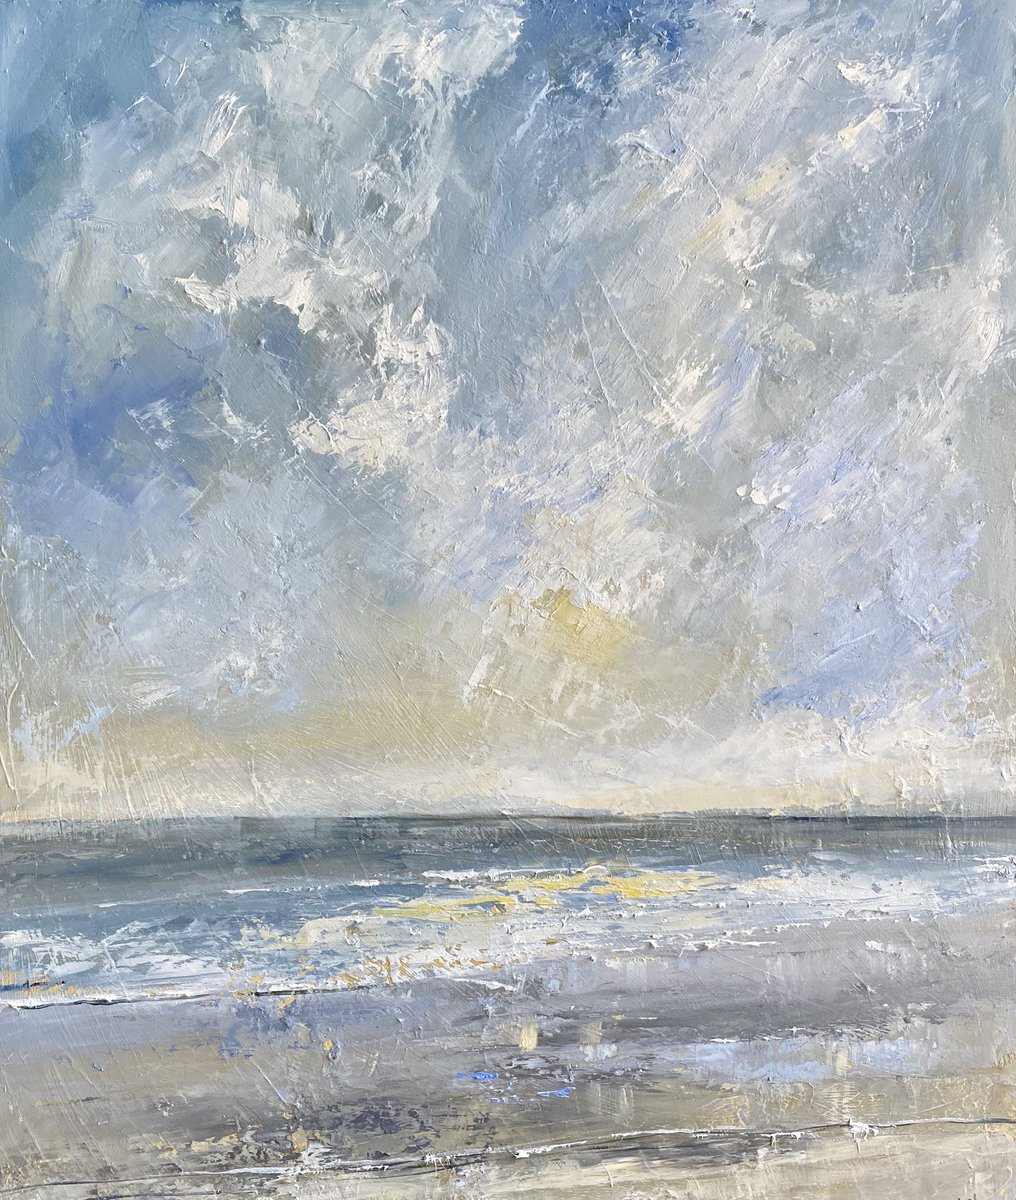 Hoping to get this one ready to hang today. I want to see it in the dining/gallery for awhile to decide if finished. A Breezy Walk On The Beach #seascape #oils #bigskies #breeze #clouds #sun #isolationpainting